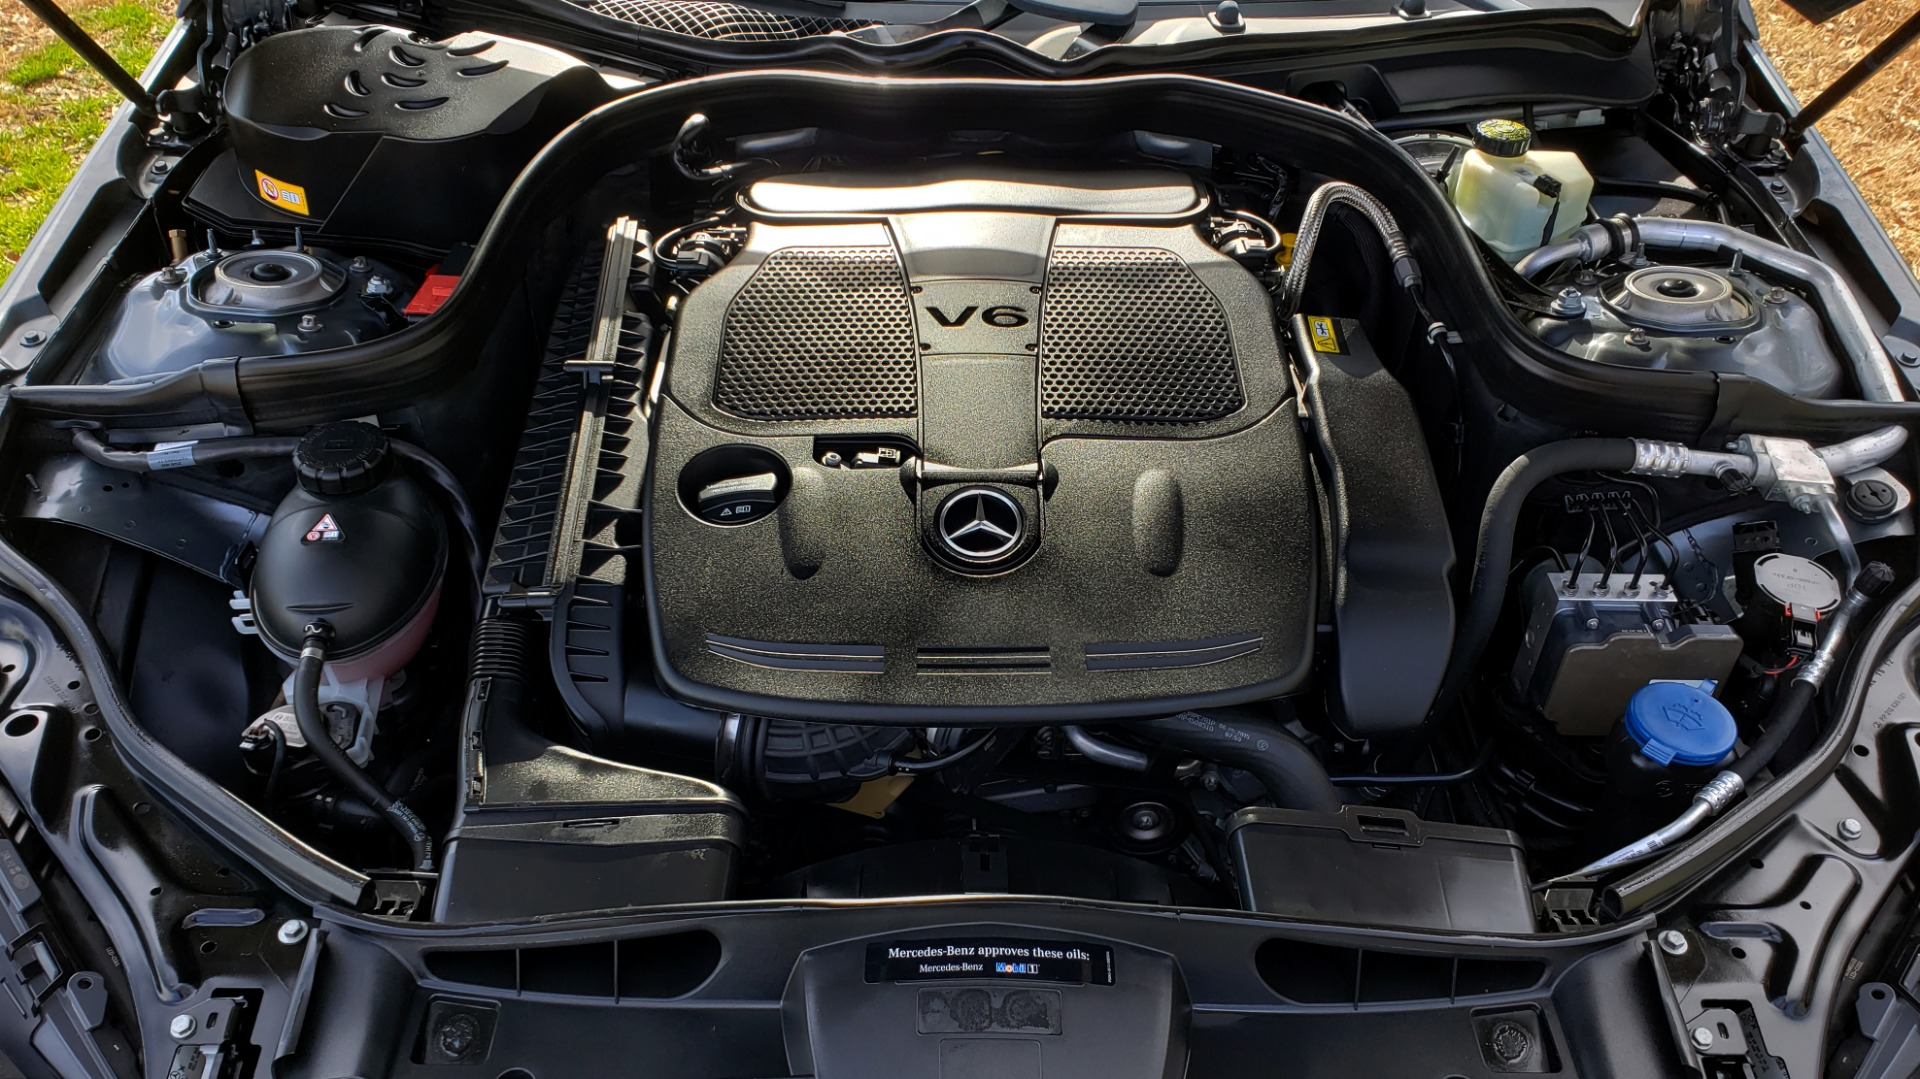 Used 2016 Mercedes-Benz E-CLASS E 350 PREM / KEYLESS-GO / NAV / SUNROOF / REARVIEW for sale Sold at Formula Imports in Charlotte NC 28227 17